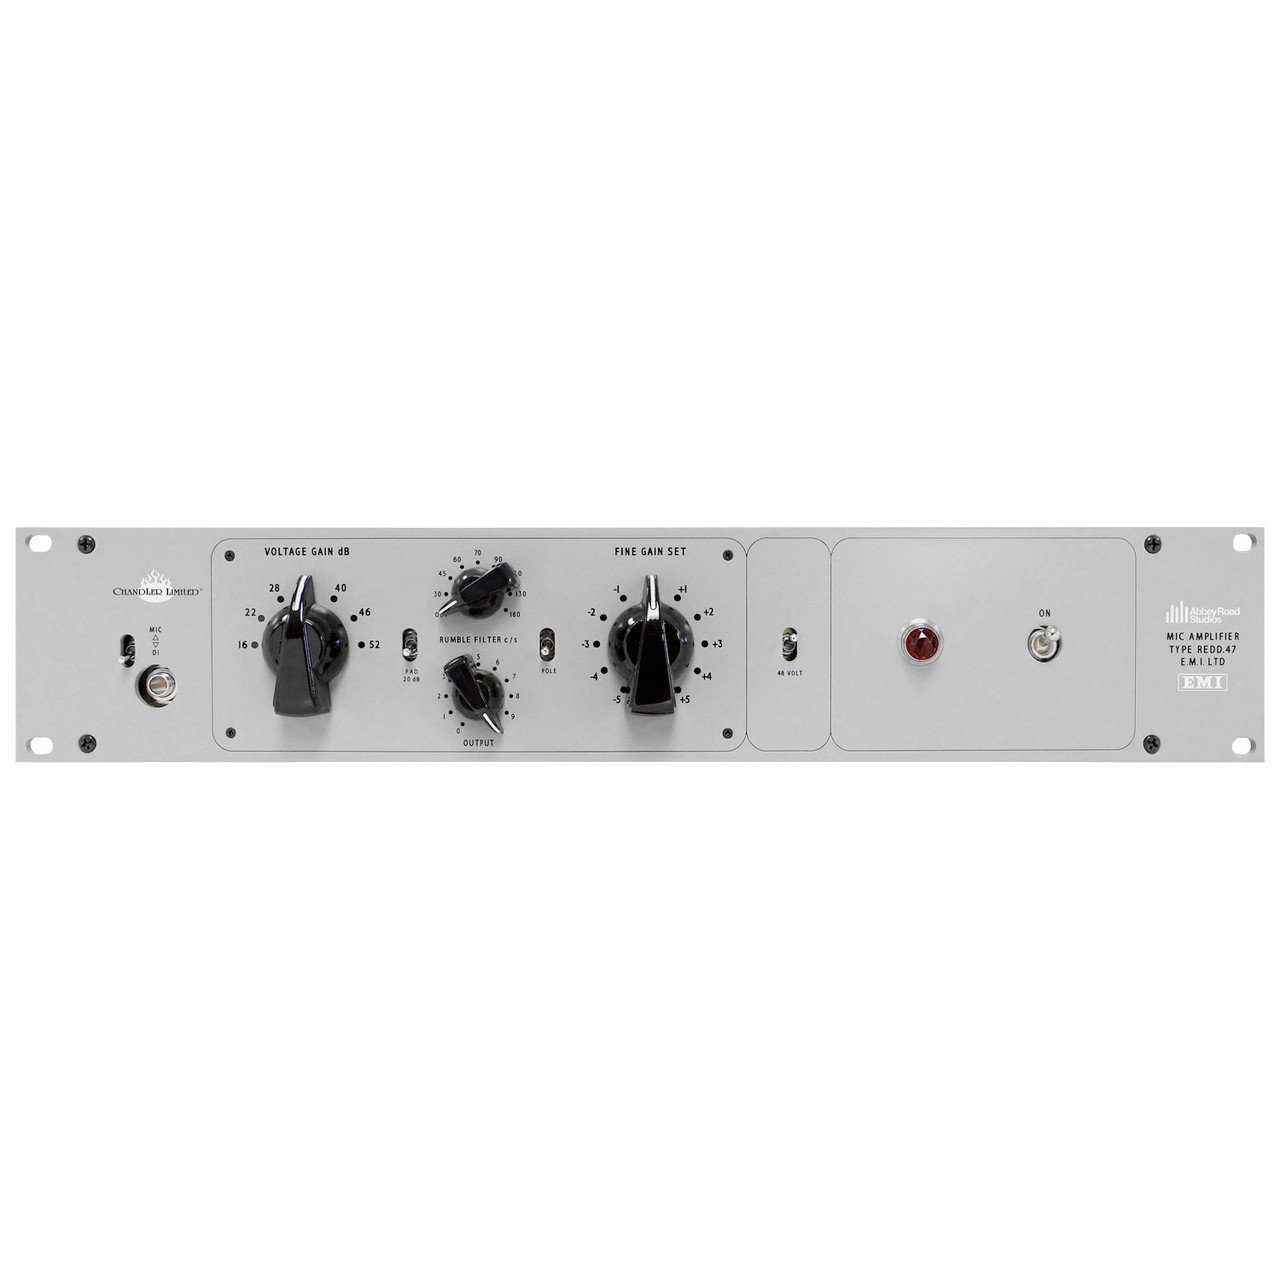 Preamps/Channel Strips - Chandler Limited REDD.47 Pre Amp